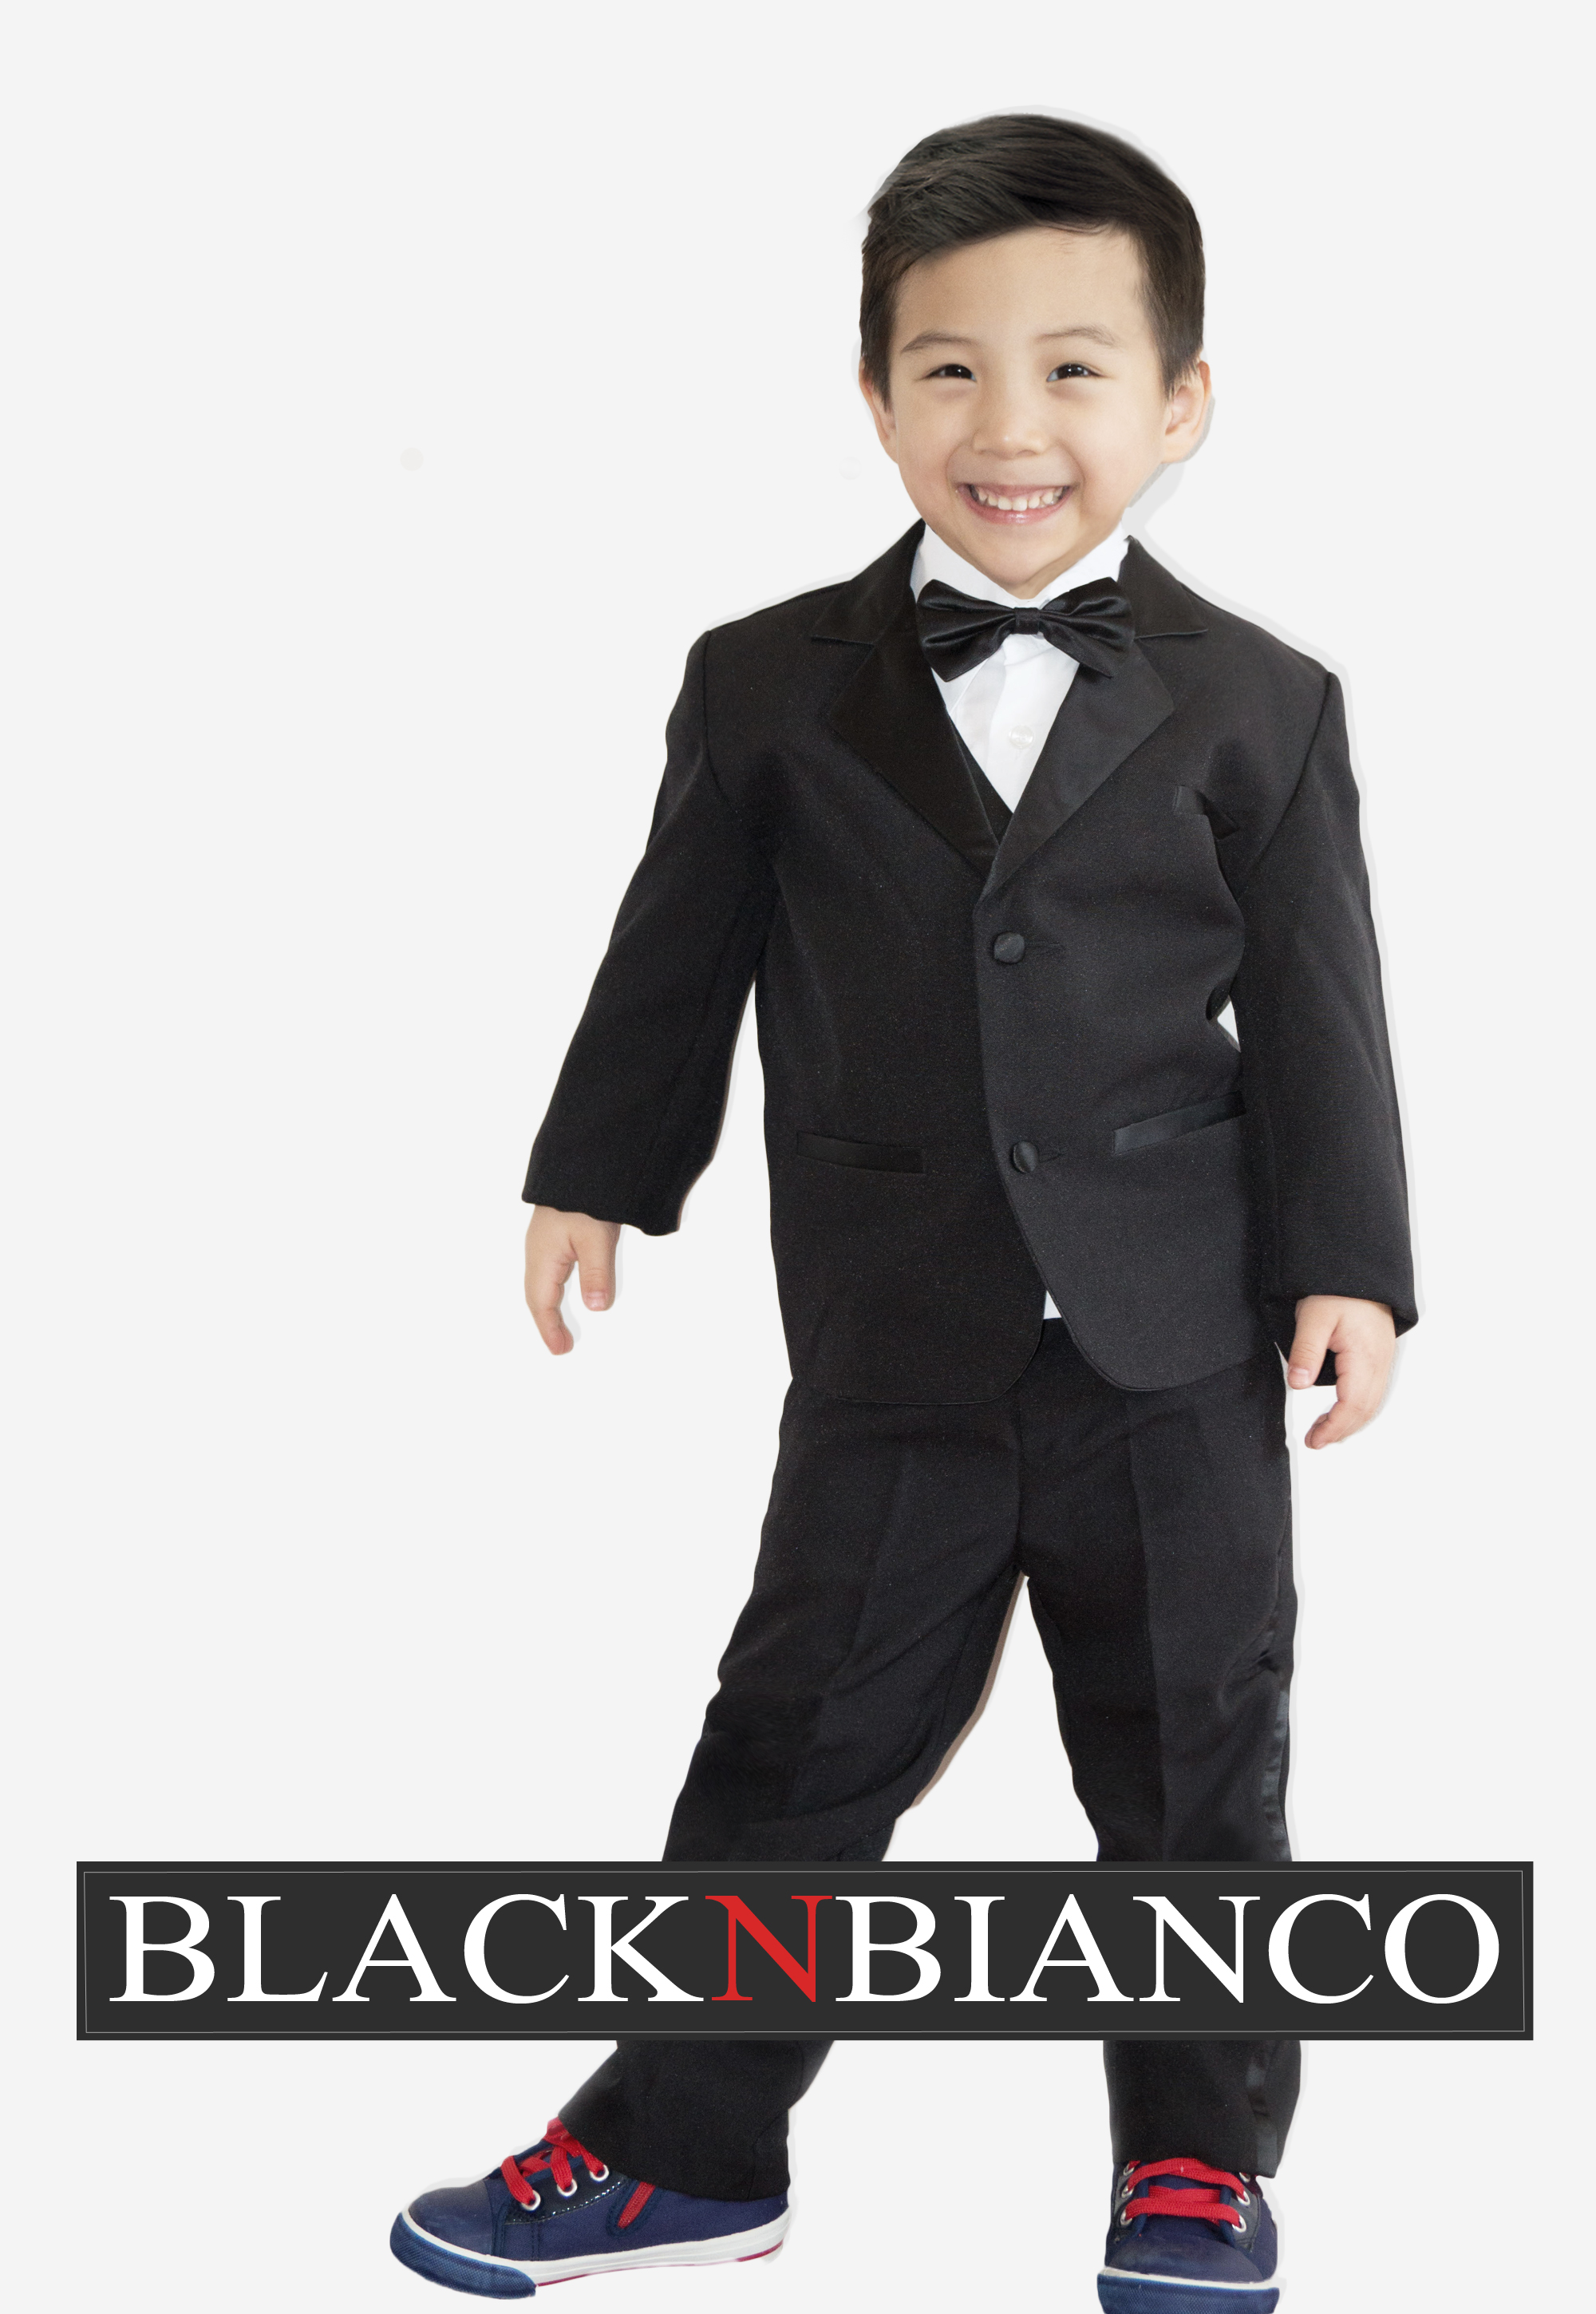 Toddler Suits. Get your dapper little man all dressed up with our sharp selection of toddler suits. Whether he's the ring bearer at a wedding or he simply needs to look his very best, you're sure to find a suit that's just right for any occasion. From timeless seersucker to polished pinstripes, choose from a range of designs to highlight his super-cool style.